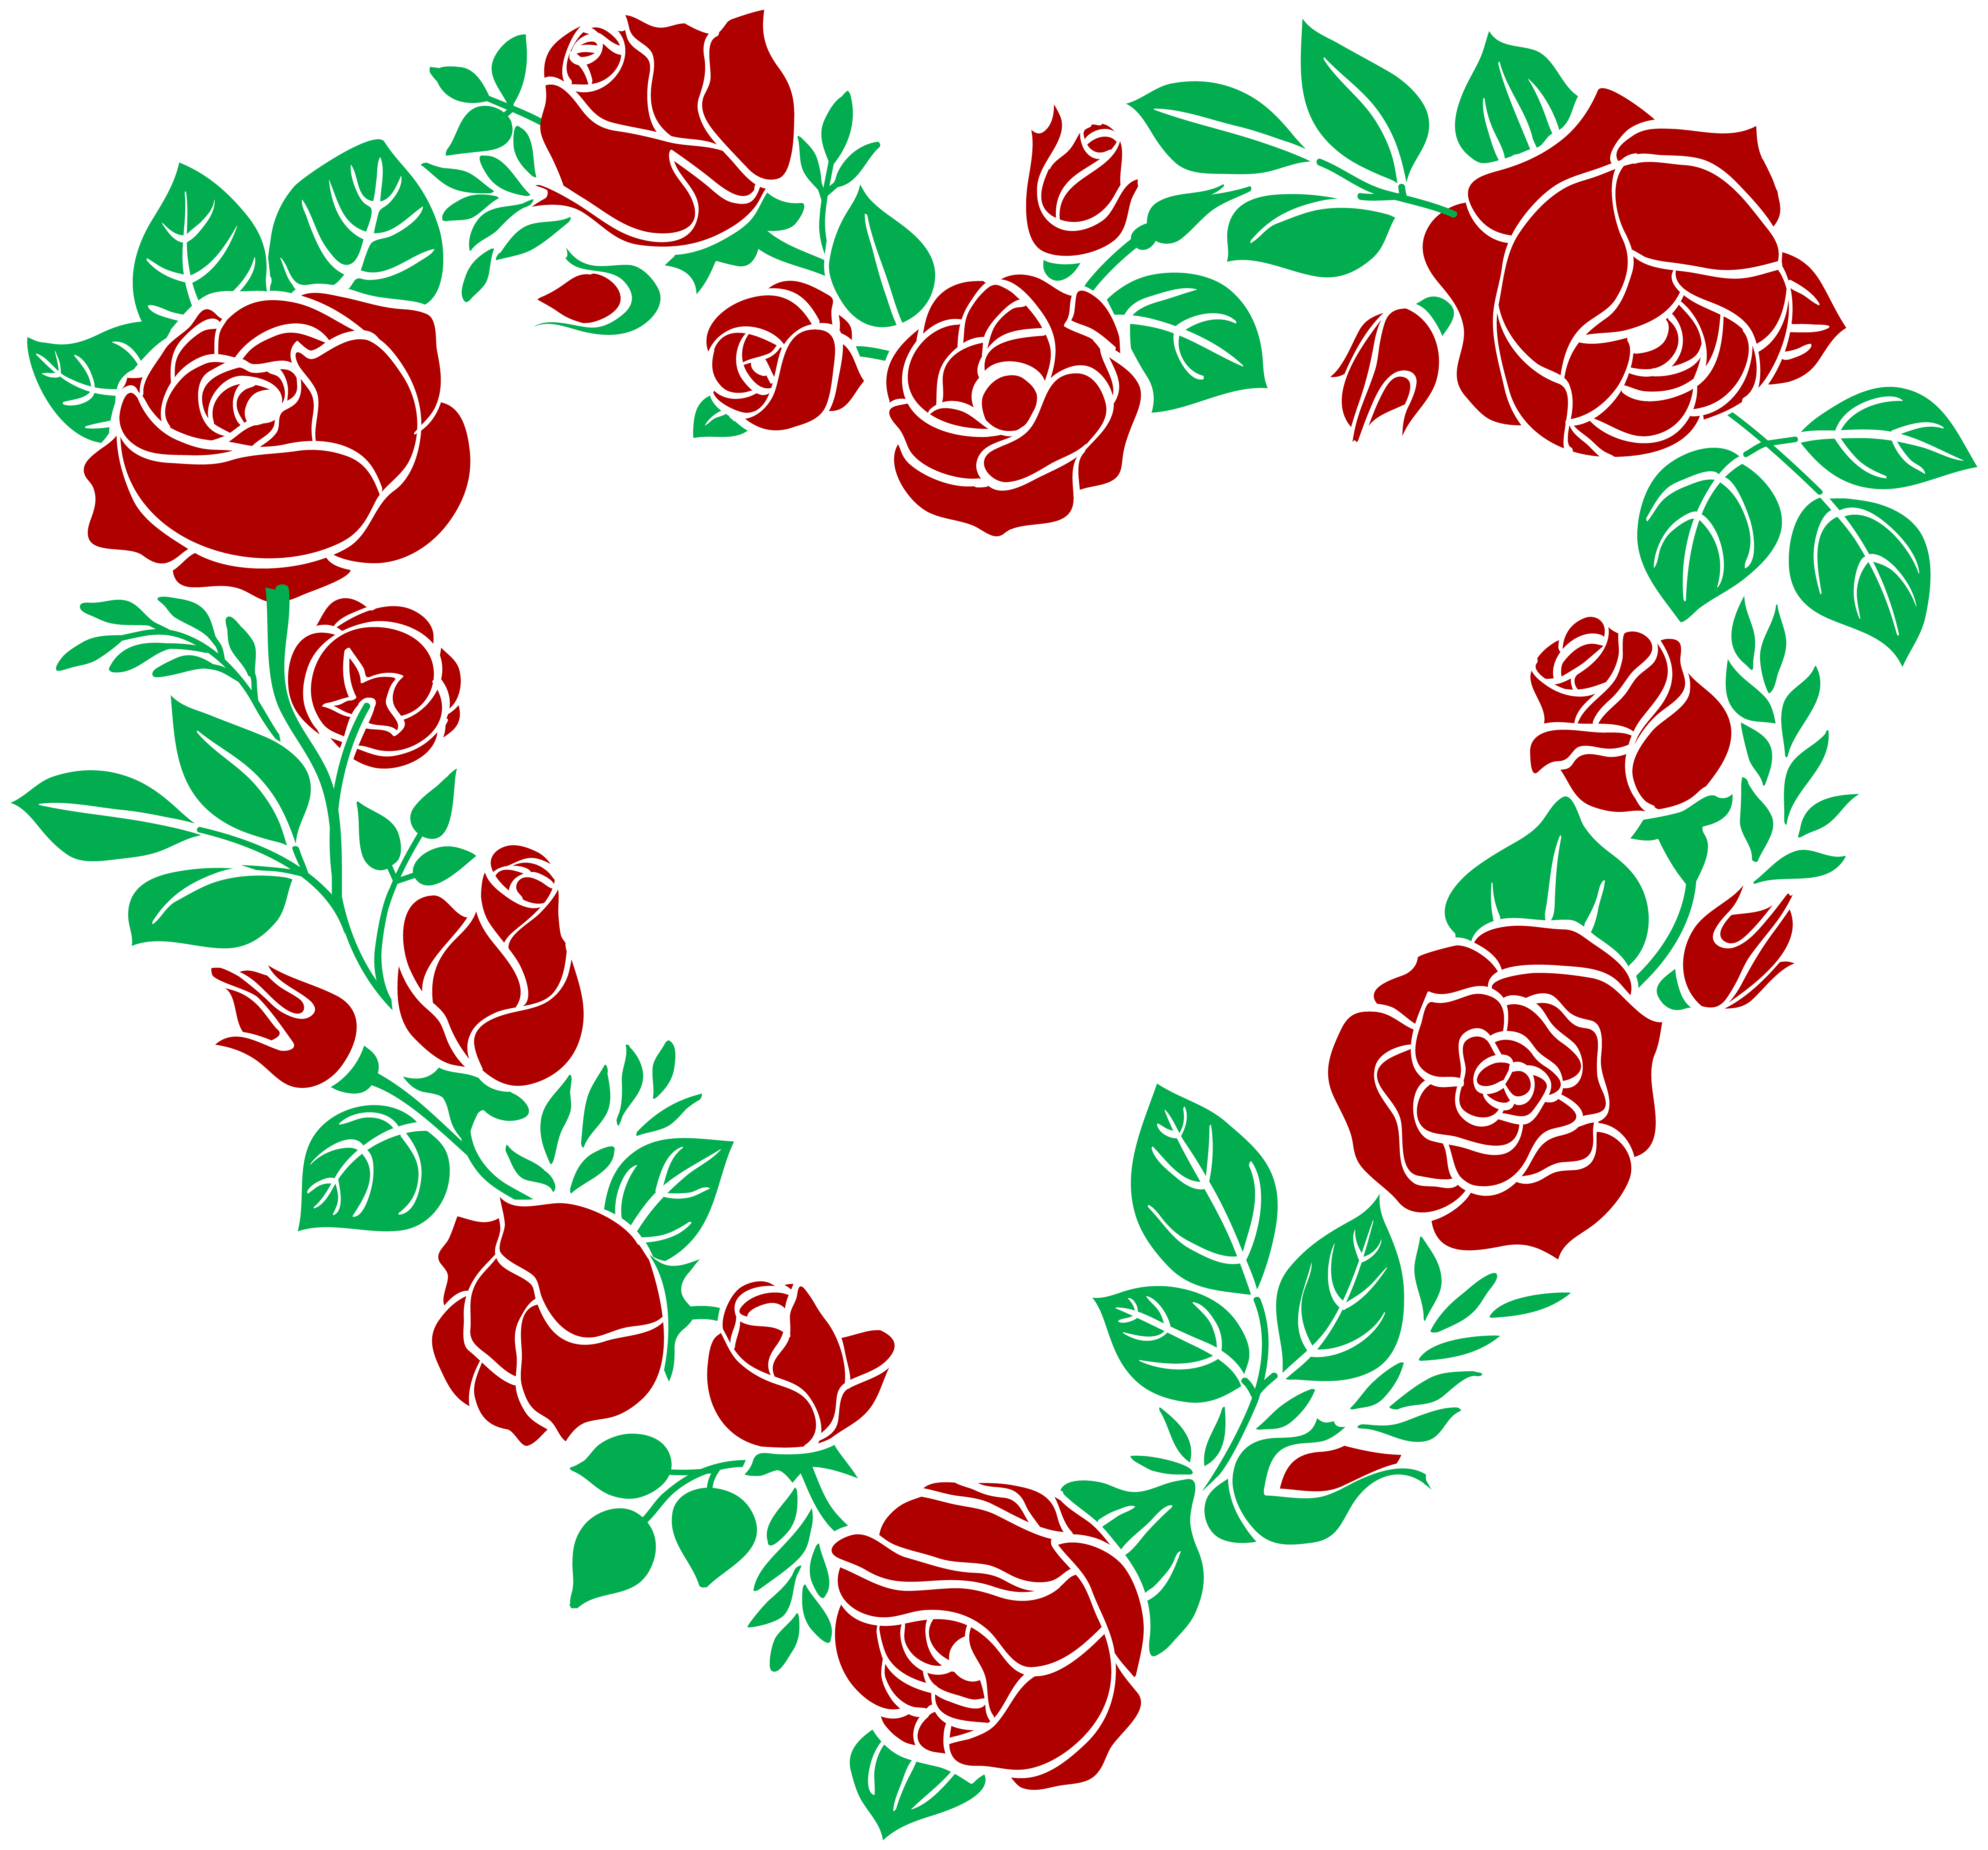 Red Rose clipart rose border #14